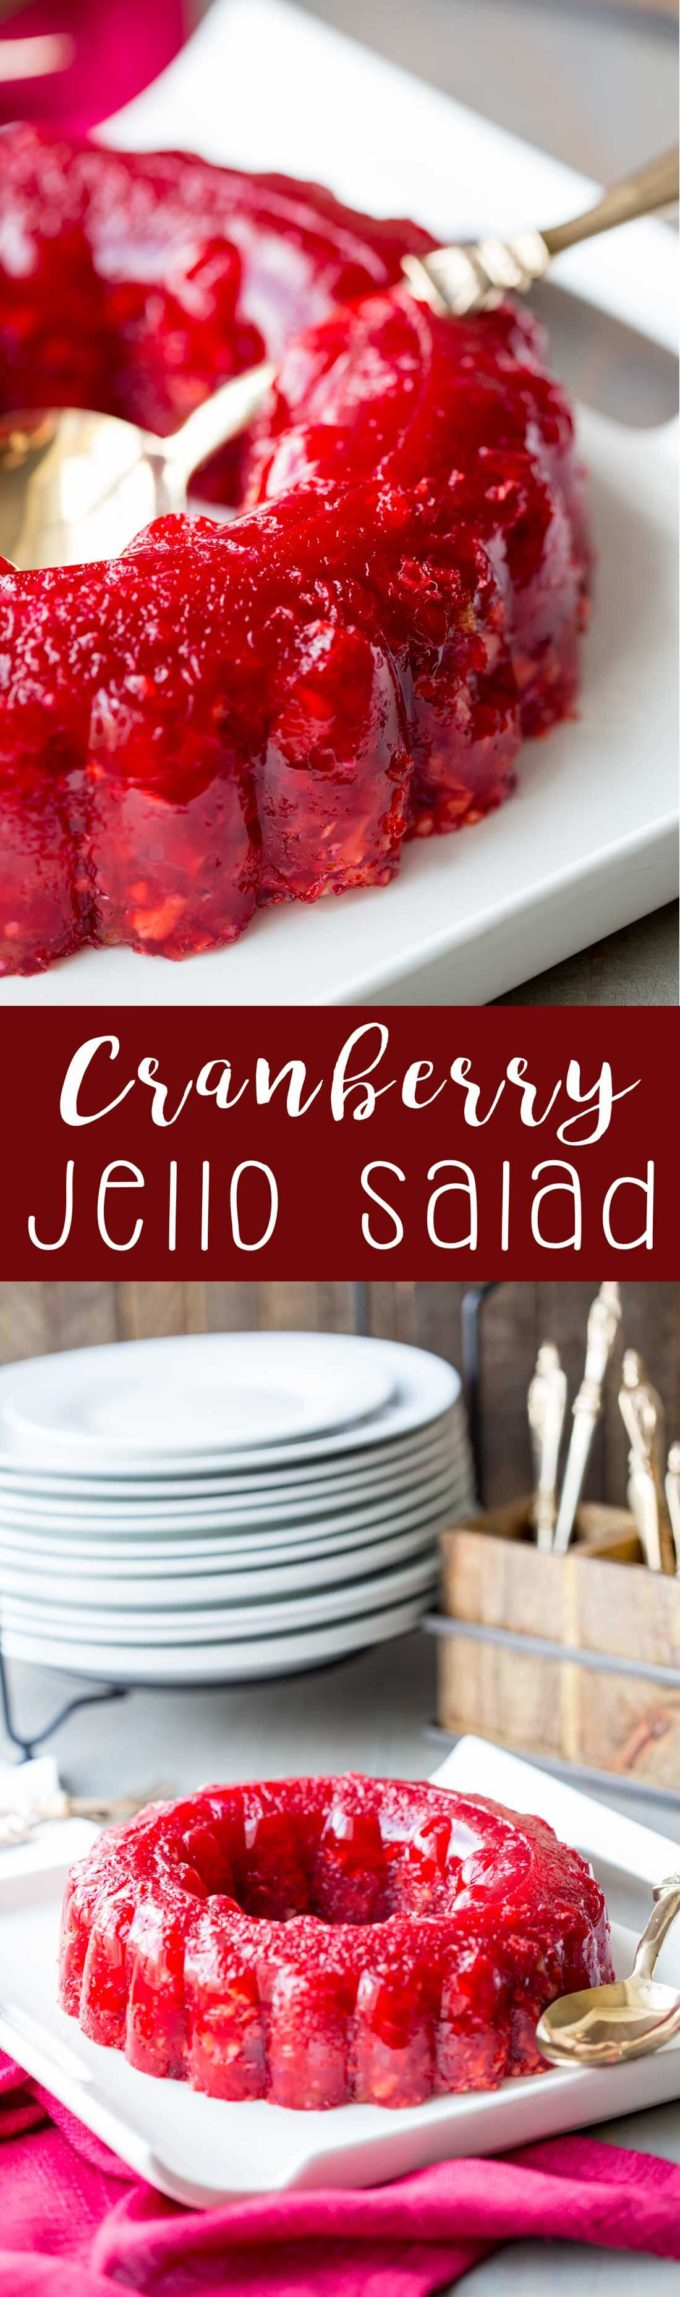 Cranberry Jello Salad: A combination of orange juice, cranberry juice, crunchy walnuts, celery, and pineapple that will make your holiday unforgettably sweet.